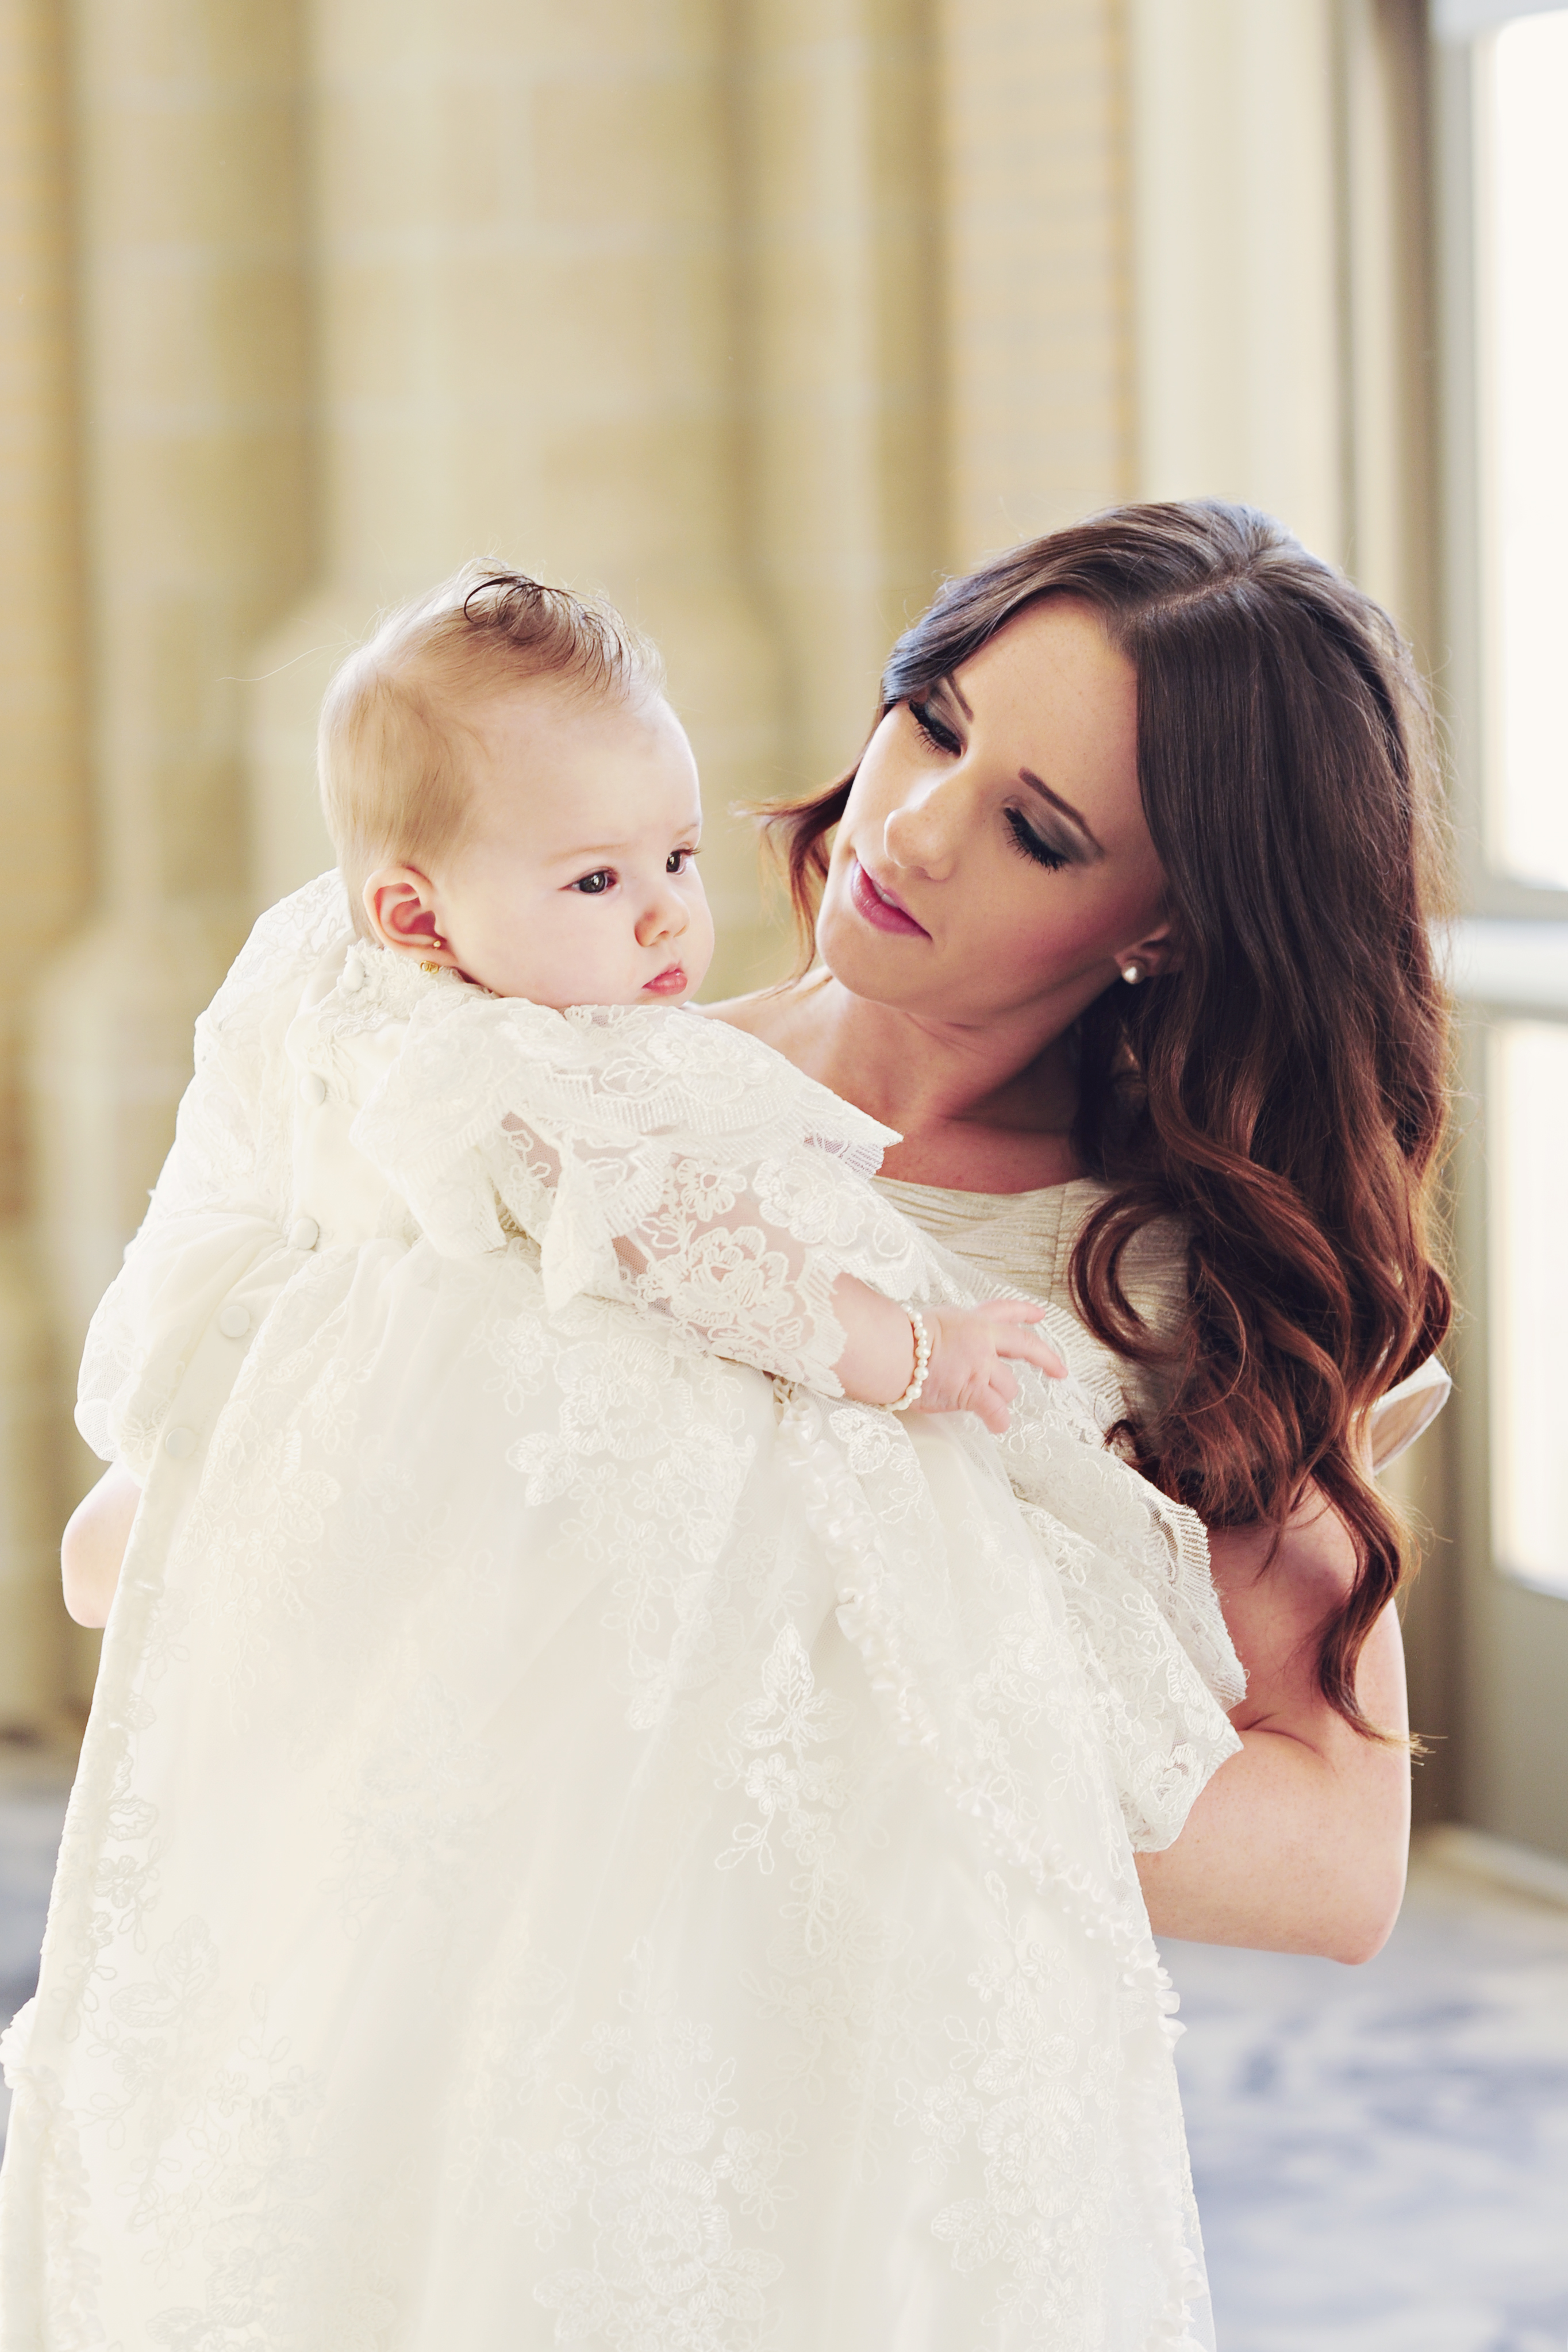 Royal Christening Gowns | A Behind the Scenes Look